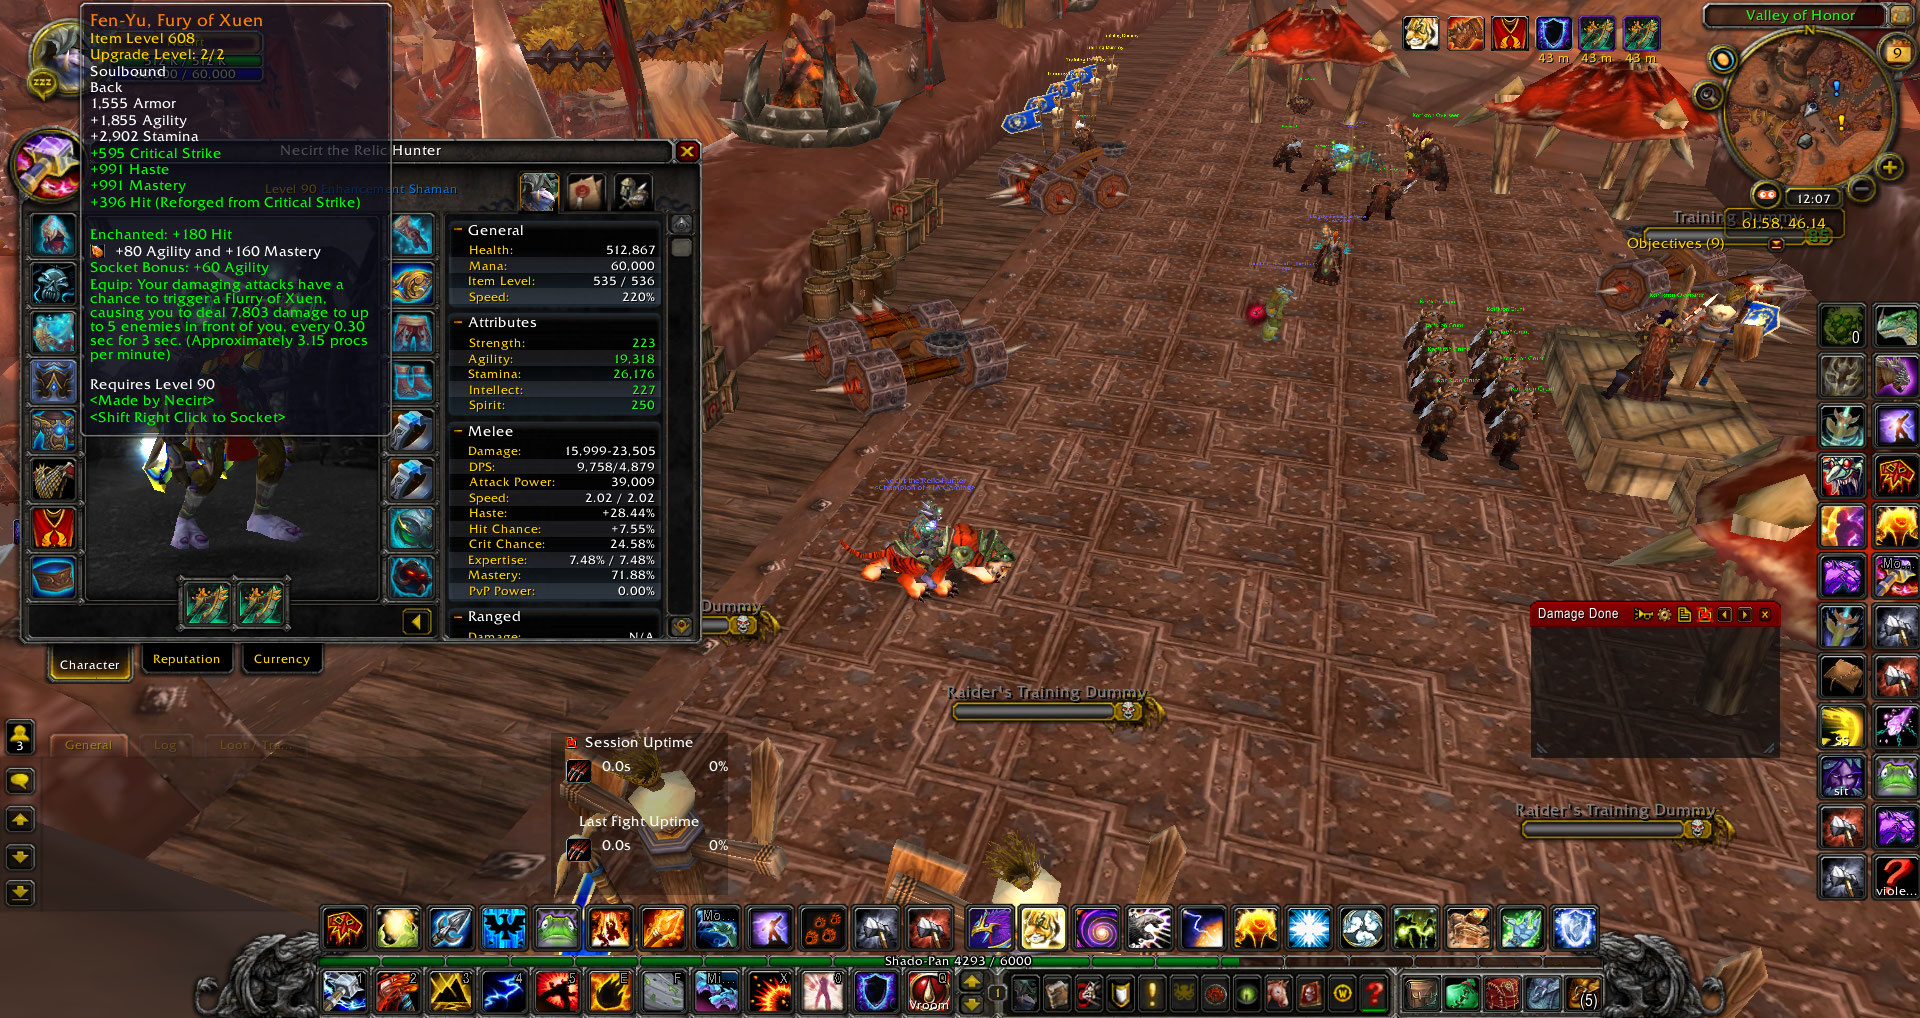 tricen games this first continue mount reputation grind completed that today dropped when pairs acquisition achievement hopped about forgot accomplishment thread completely over bought picked recent different drake missing netherwing